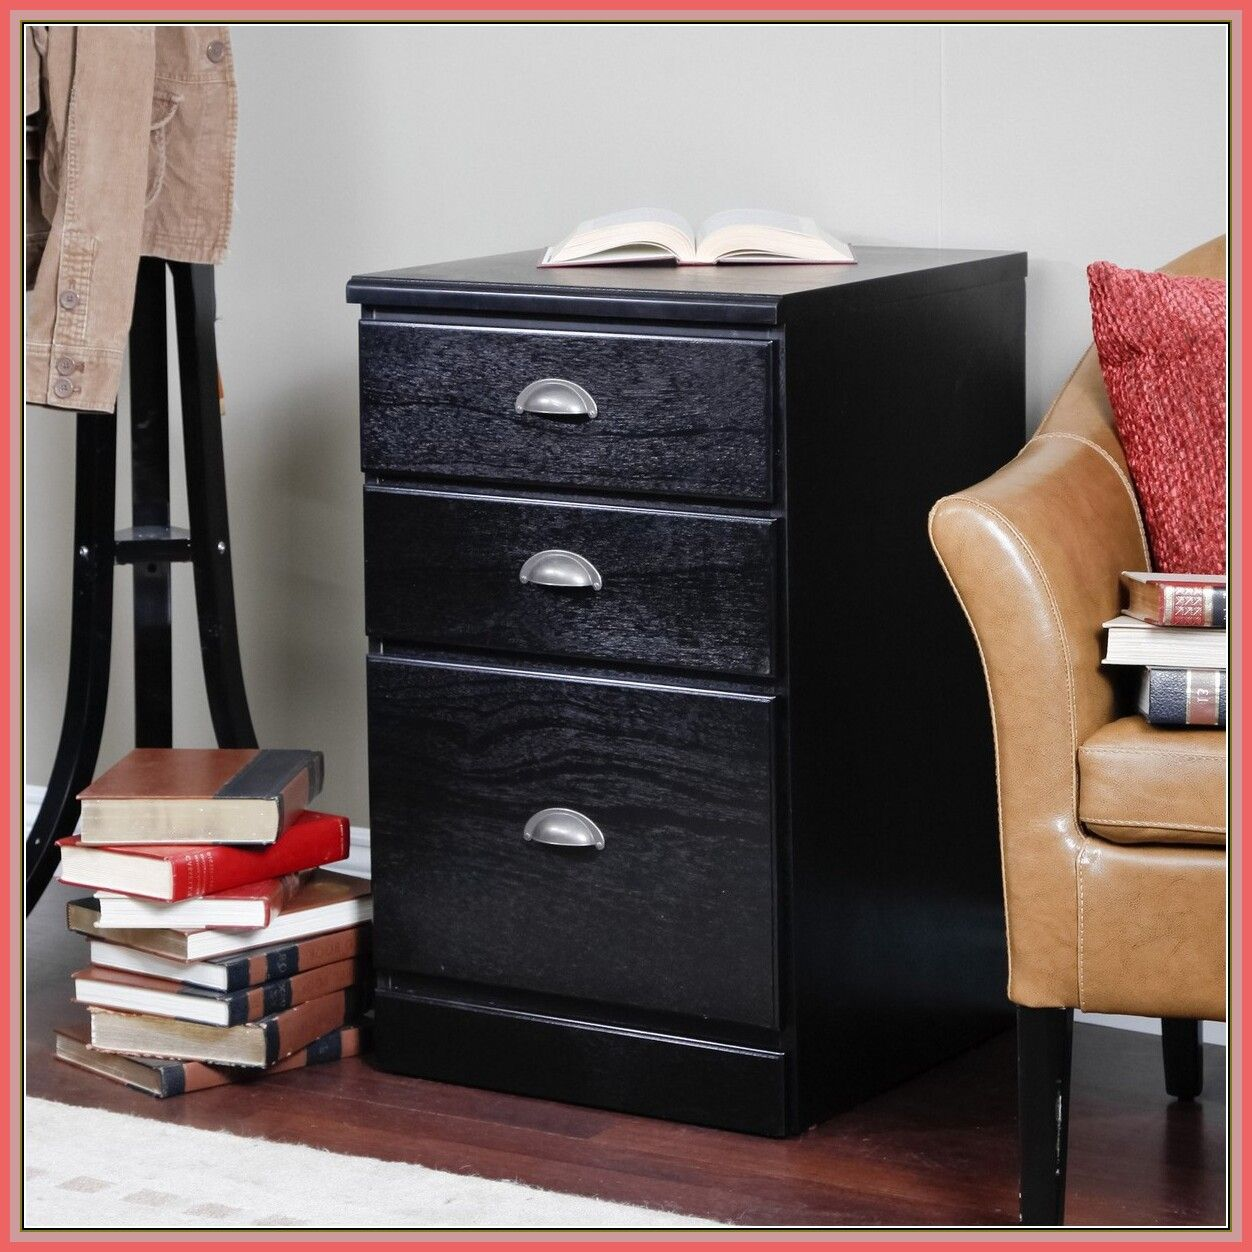 86 Reference Of Desk With Drawers Officemax In 2020 Desk With Drawers Drawers Deep Drawer Organization